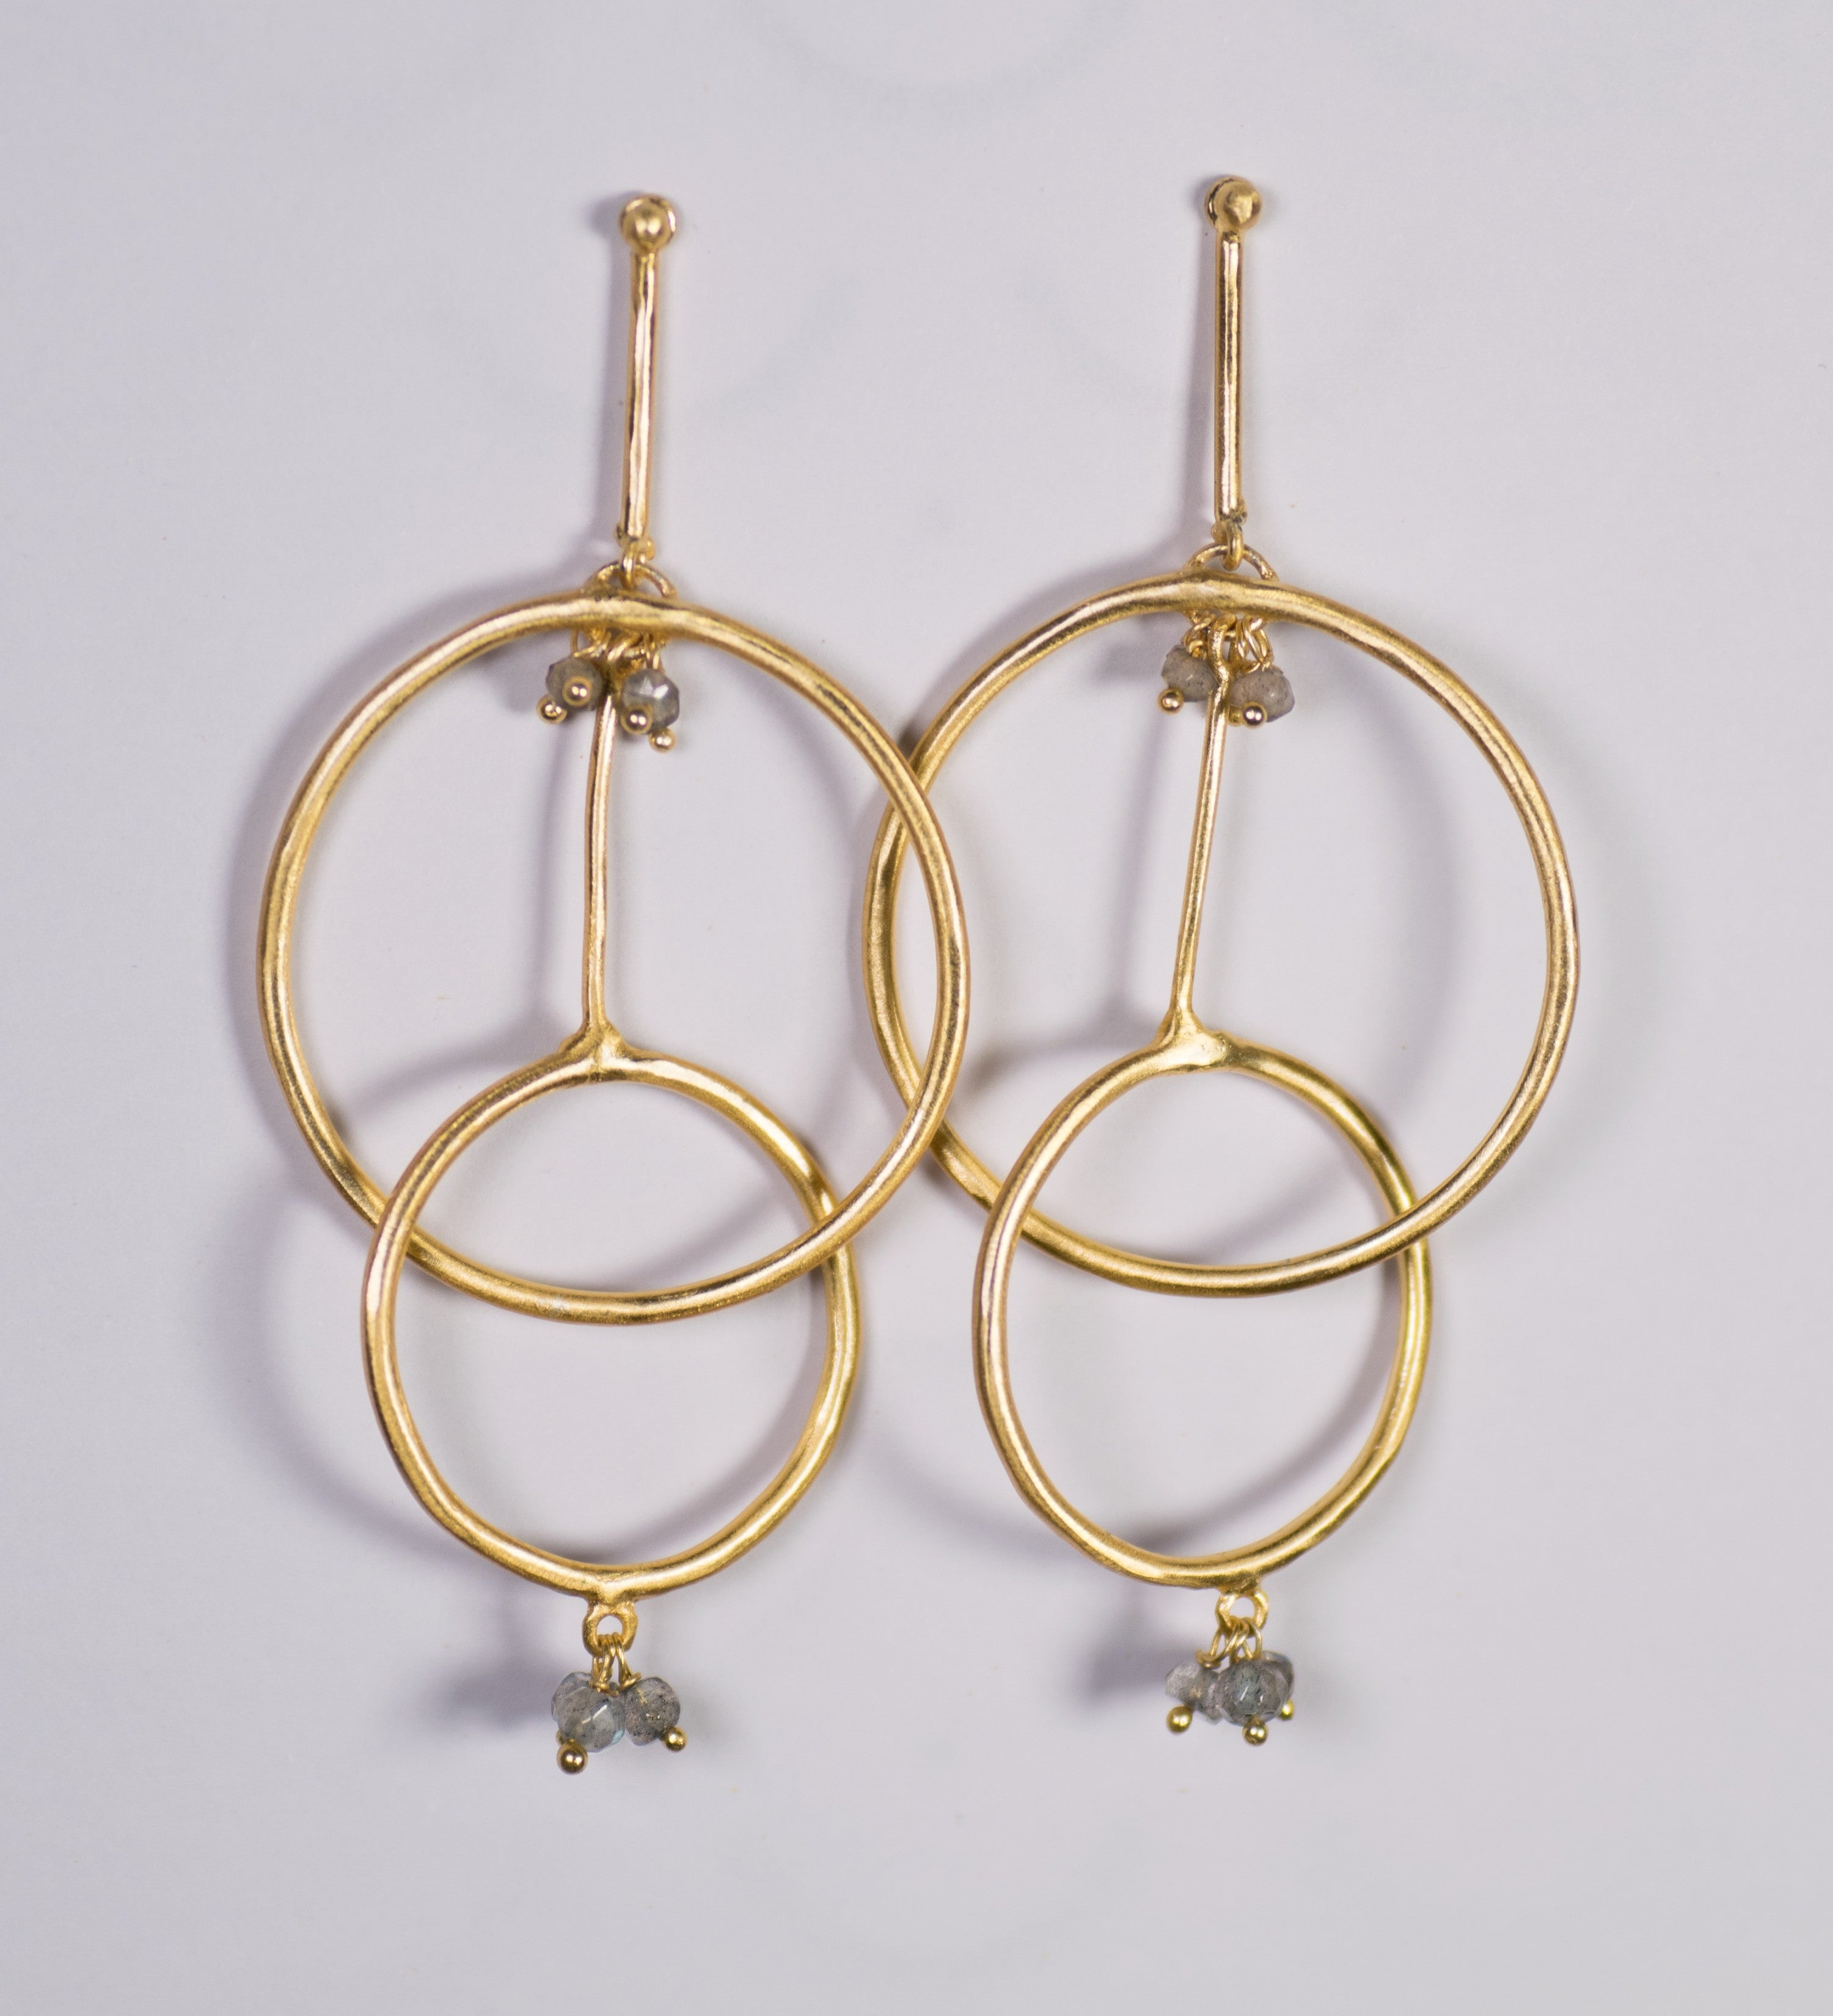 Boucles D'Oreilles Leela / The Leela Earring